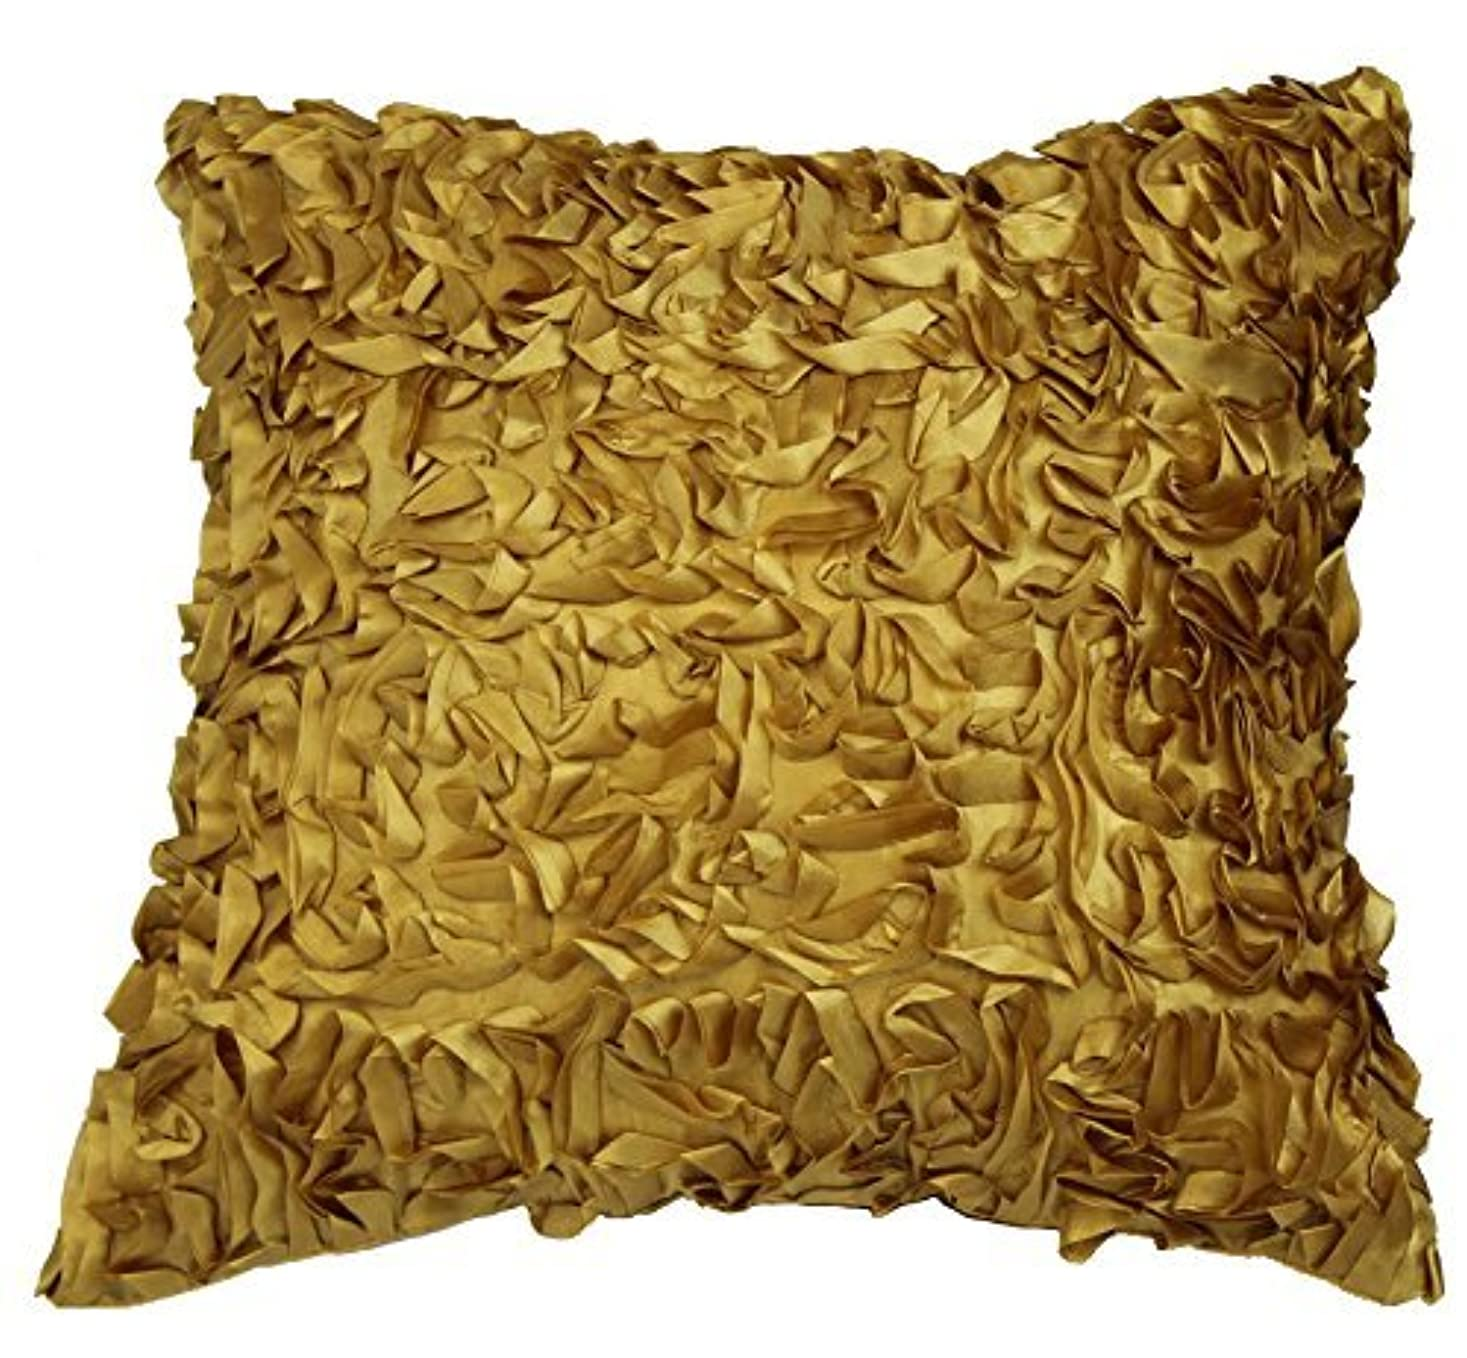 バーガー遵守する早いViolet Linen Silky Taffeta Abstract 3D Design Decorative Throw Pillow Gold [並行輸入品]